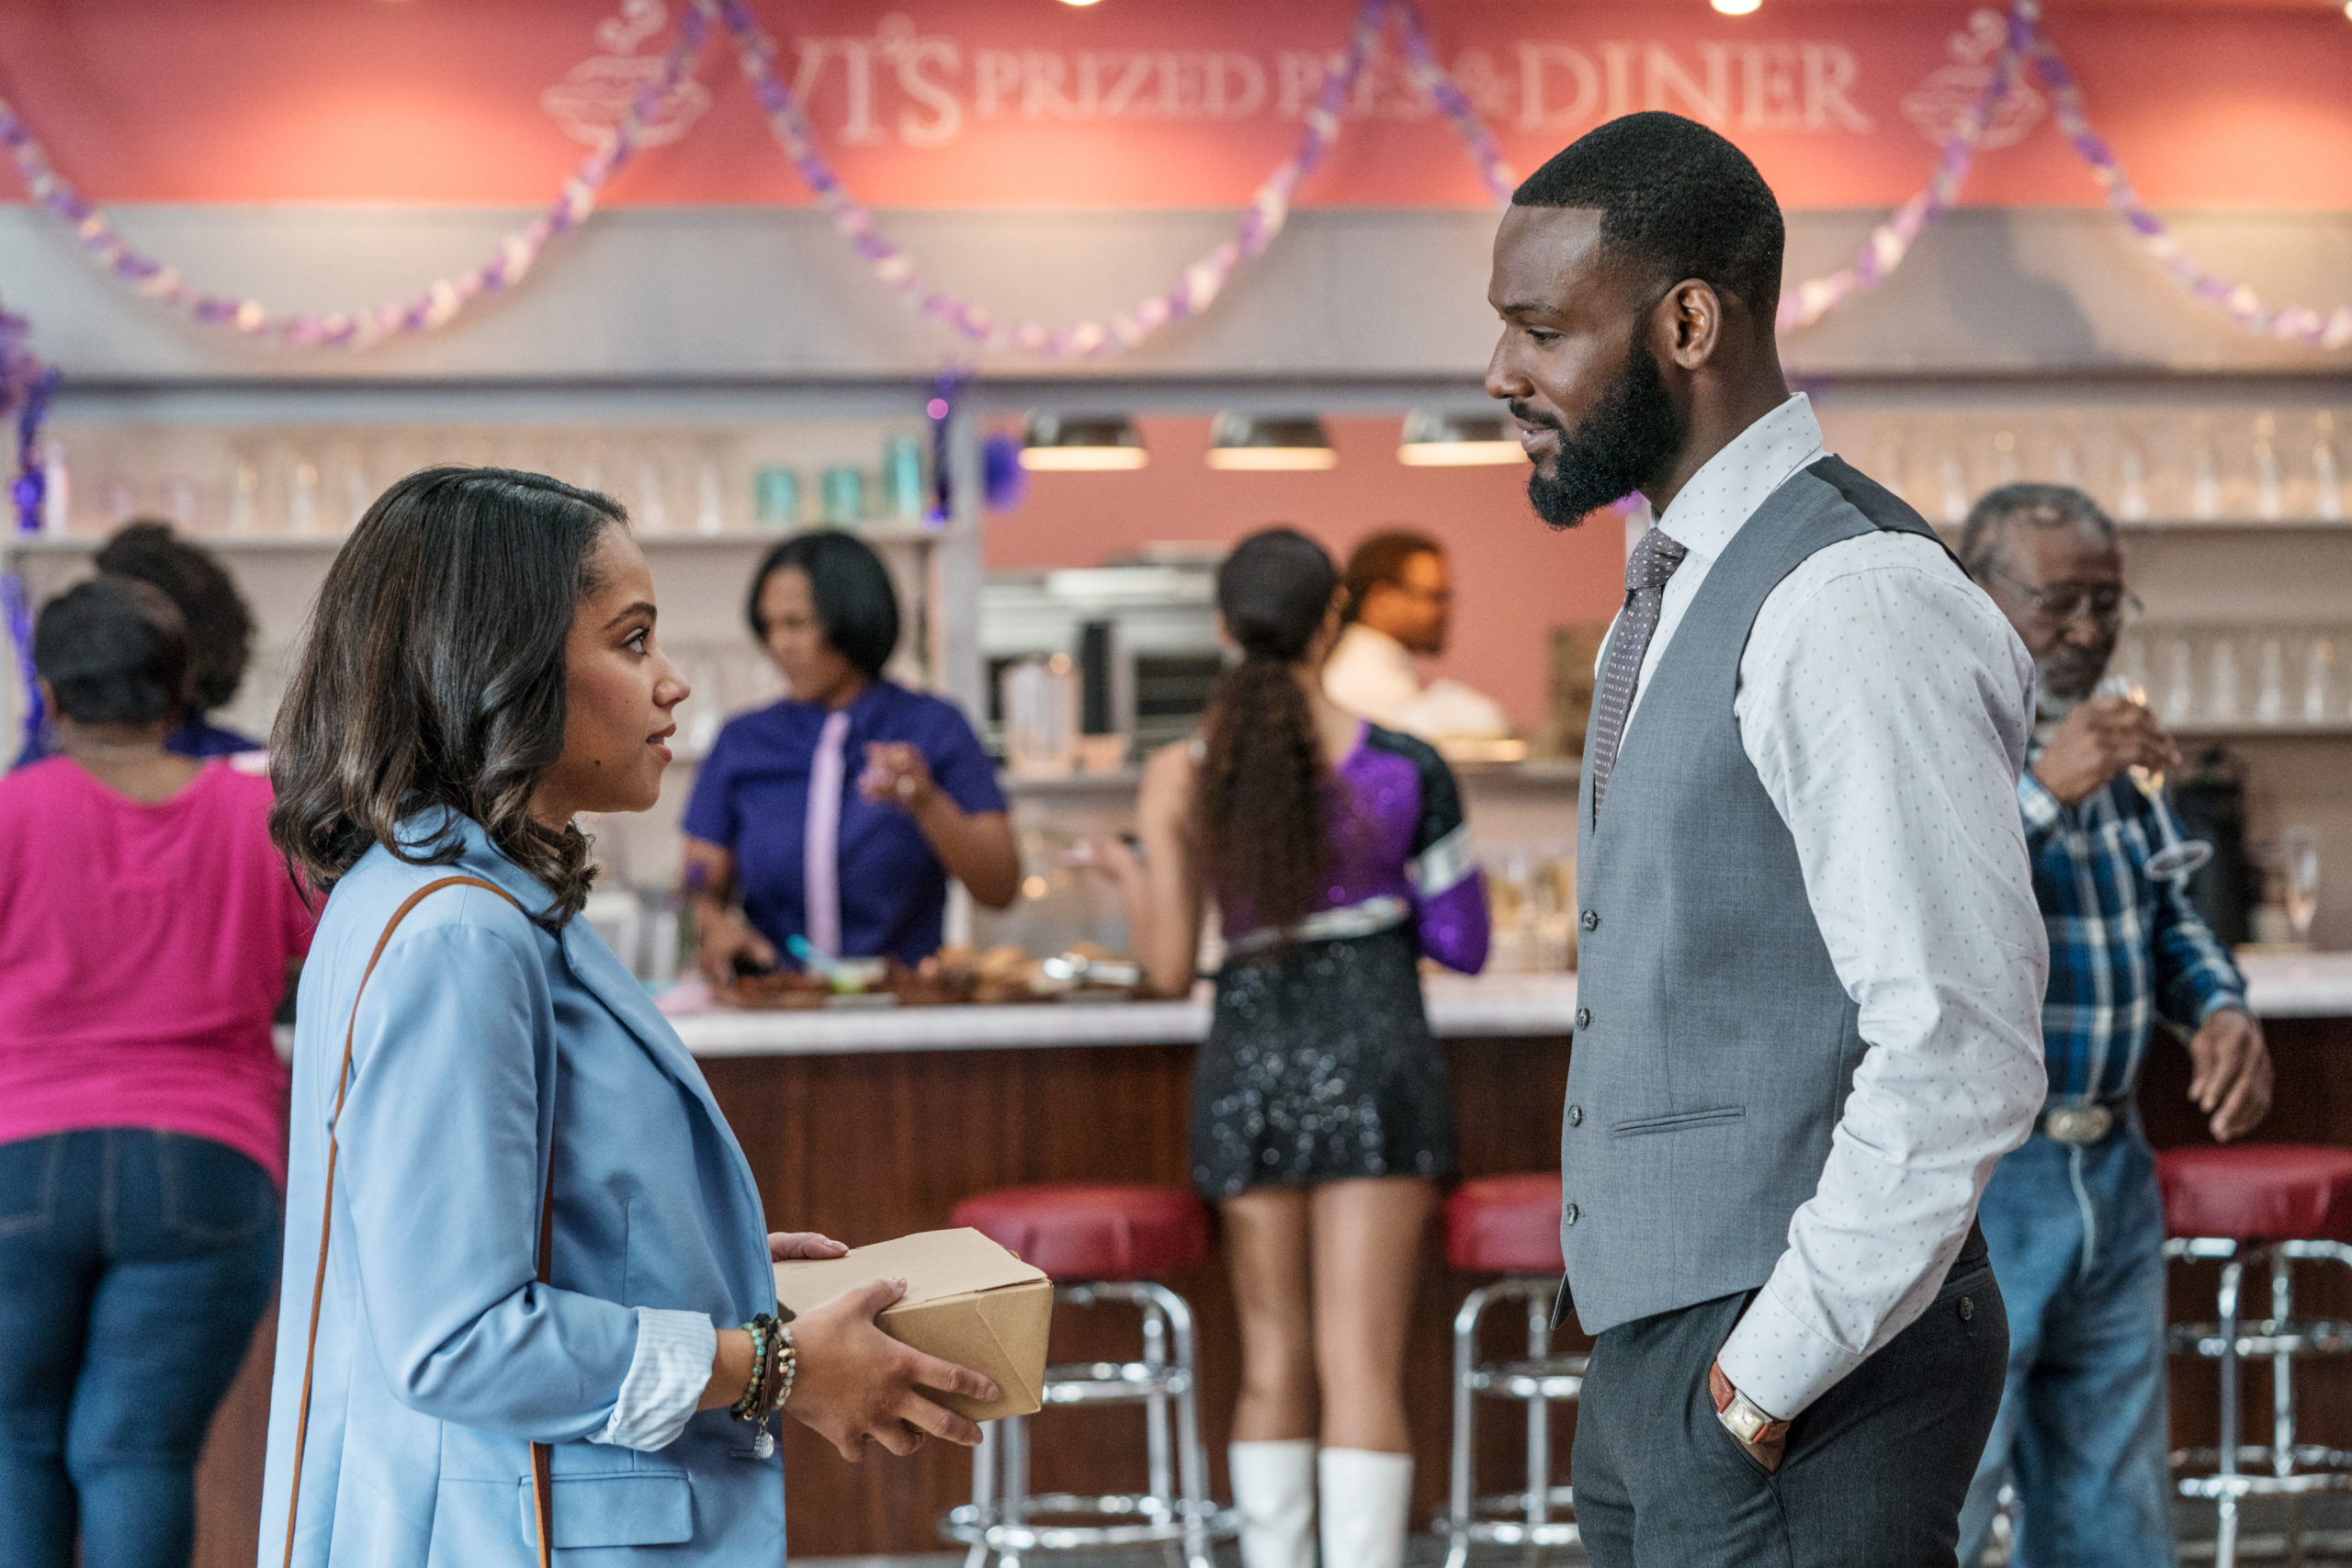 Queen Sugar Season Five Production Resumes Own Series Returning In 2021 Canceled Renewed Tv Shows Tv Series Finale Grier will join recently announced recurring guest stars erica tazel and kendall clark. queen sugar season five production resumes own series returning in 2021 canceled renewed tv shows tv series finale